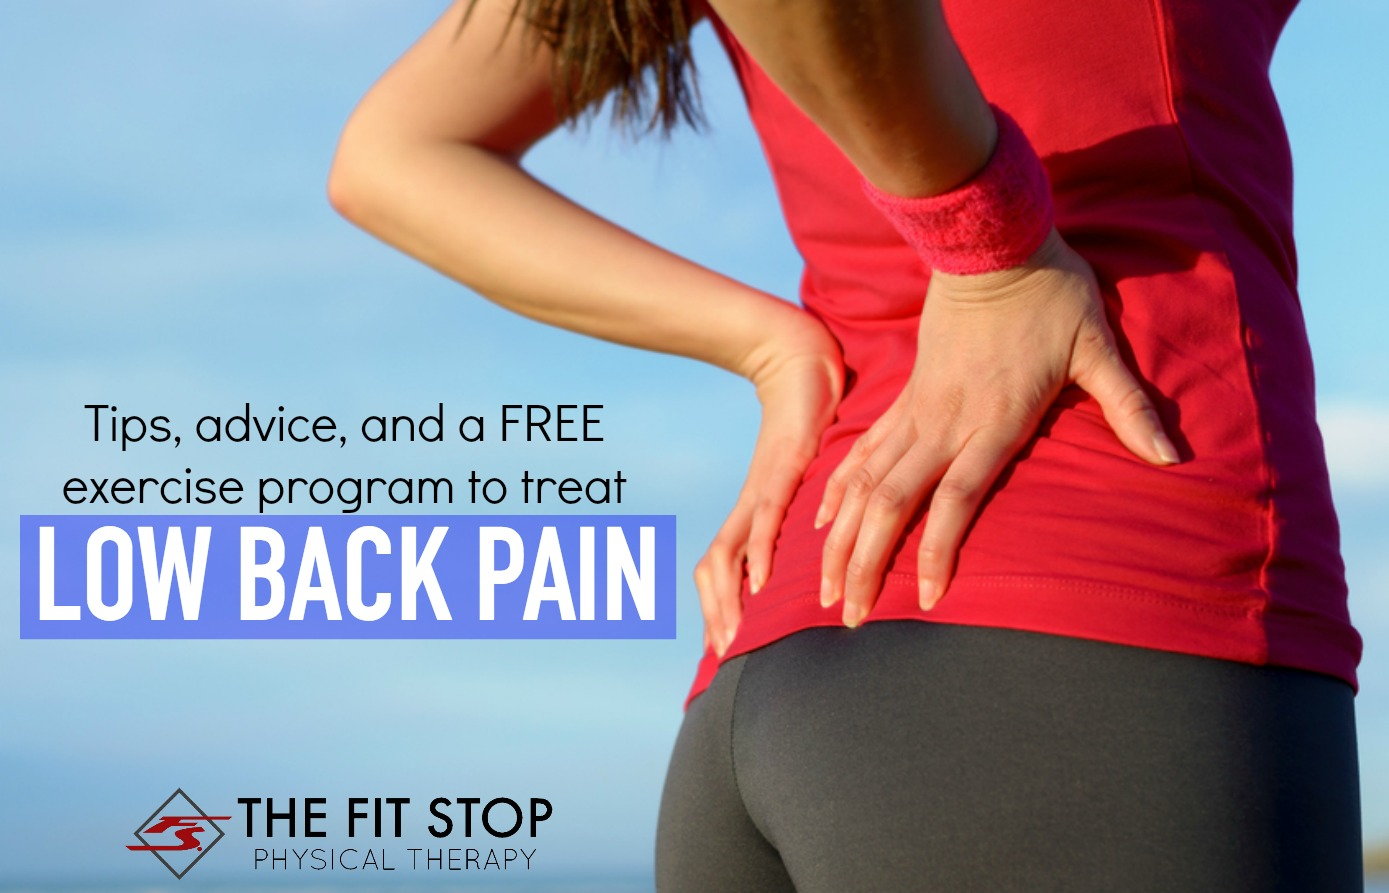 Best physical therapy program - Best Home Exercises For Back Pain